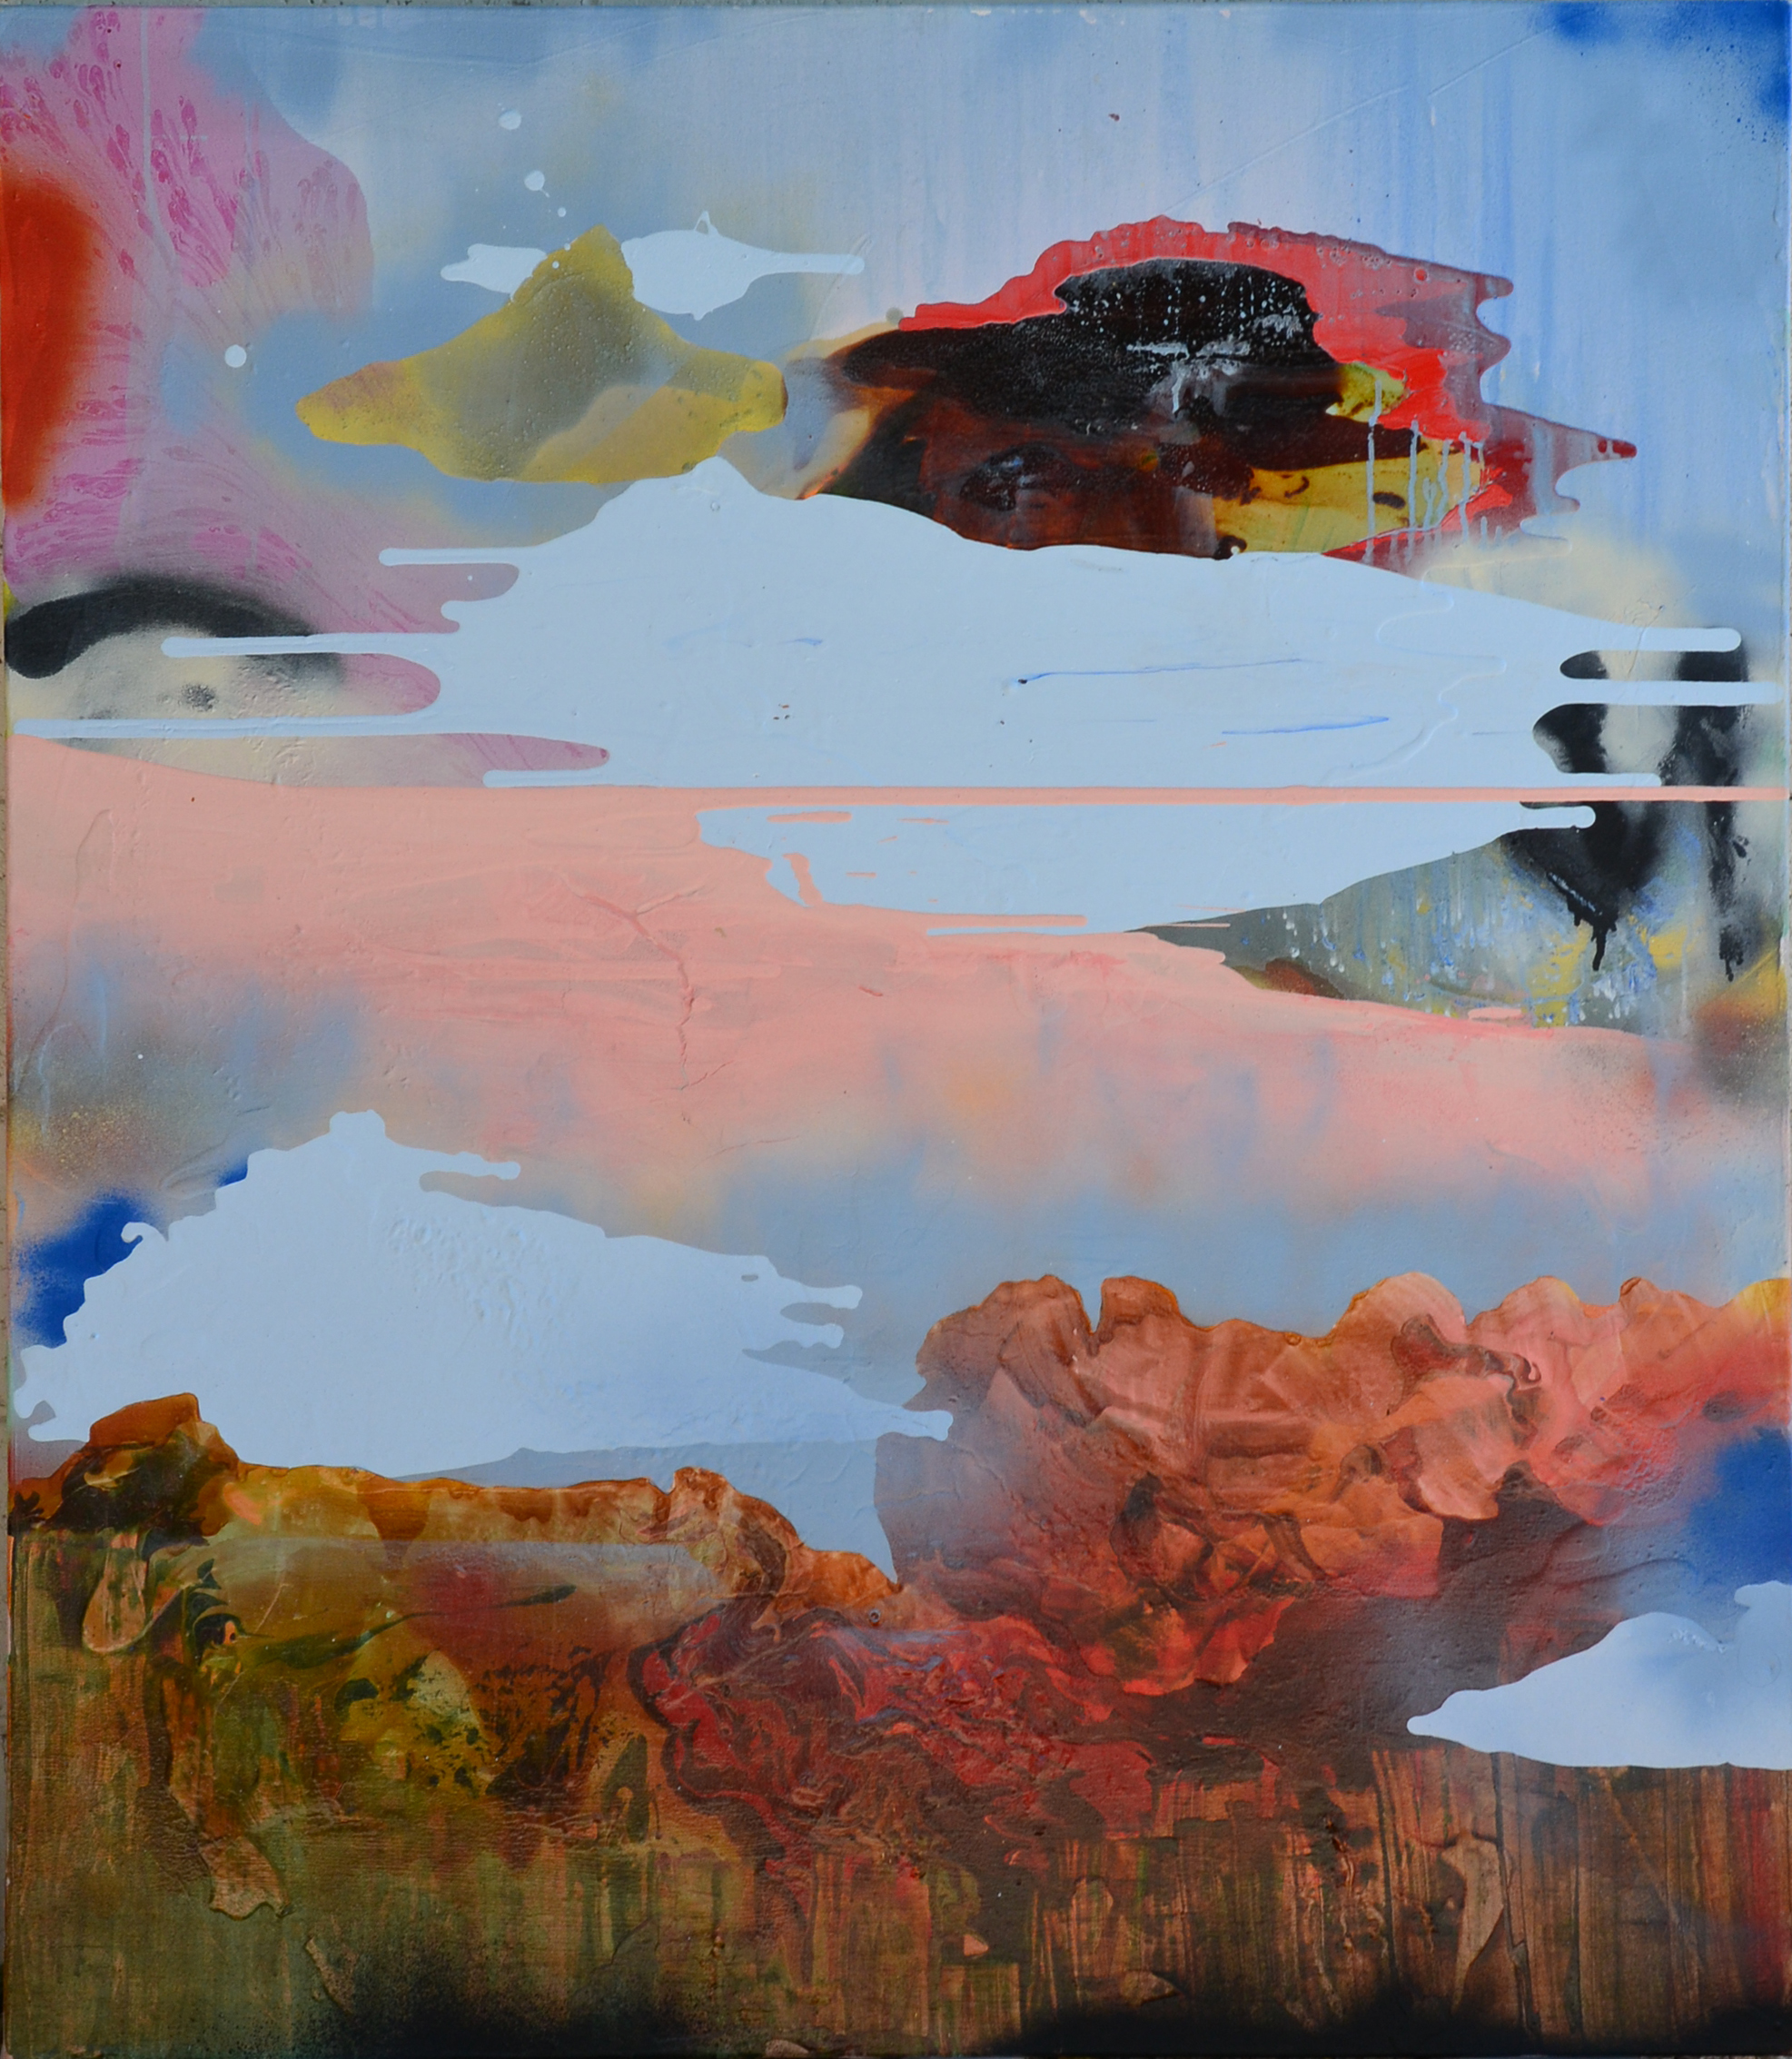 Rachel Stiff, What's Up with the Sky? mixed media, 50″ x 44″ 2014. (Image courtesy the artist and Nevada Museum of Art)